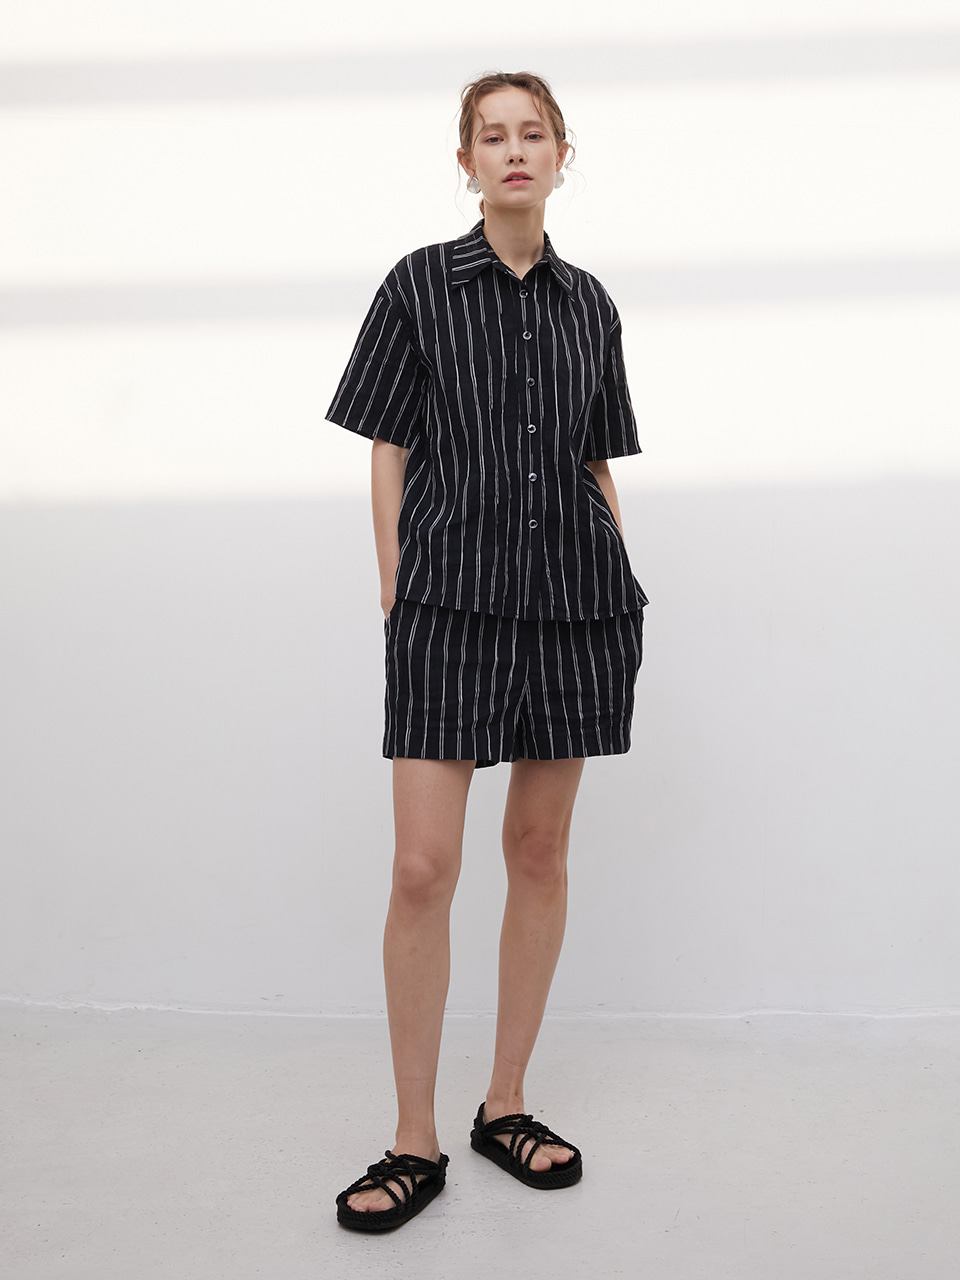 [HAGO] 3R Wrinkle Black Stripe Shirt